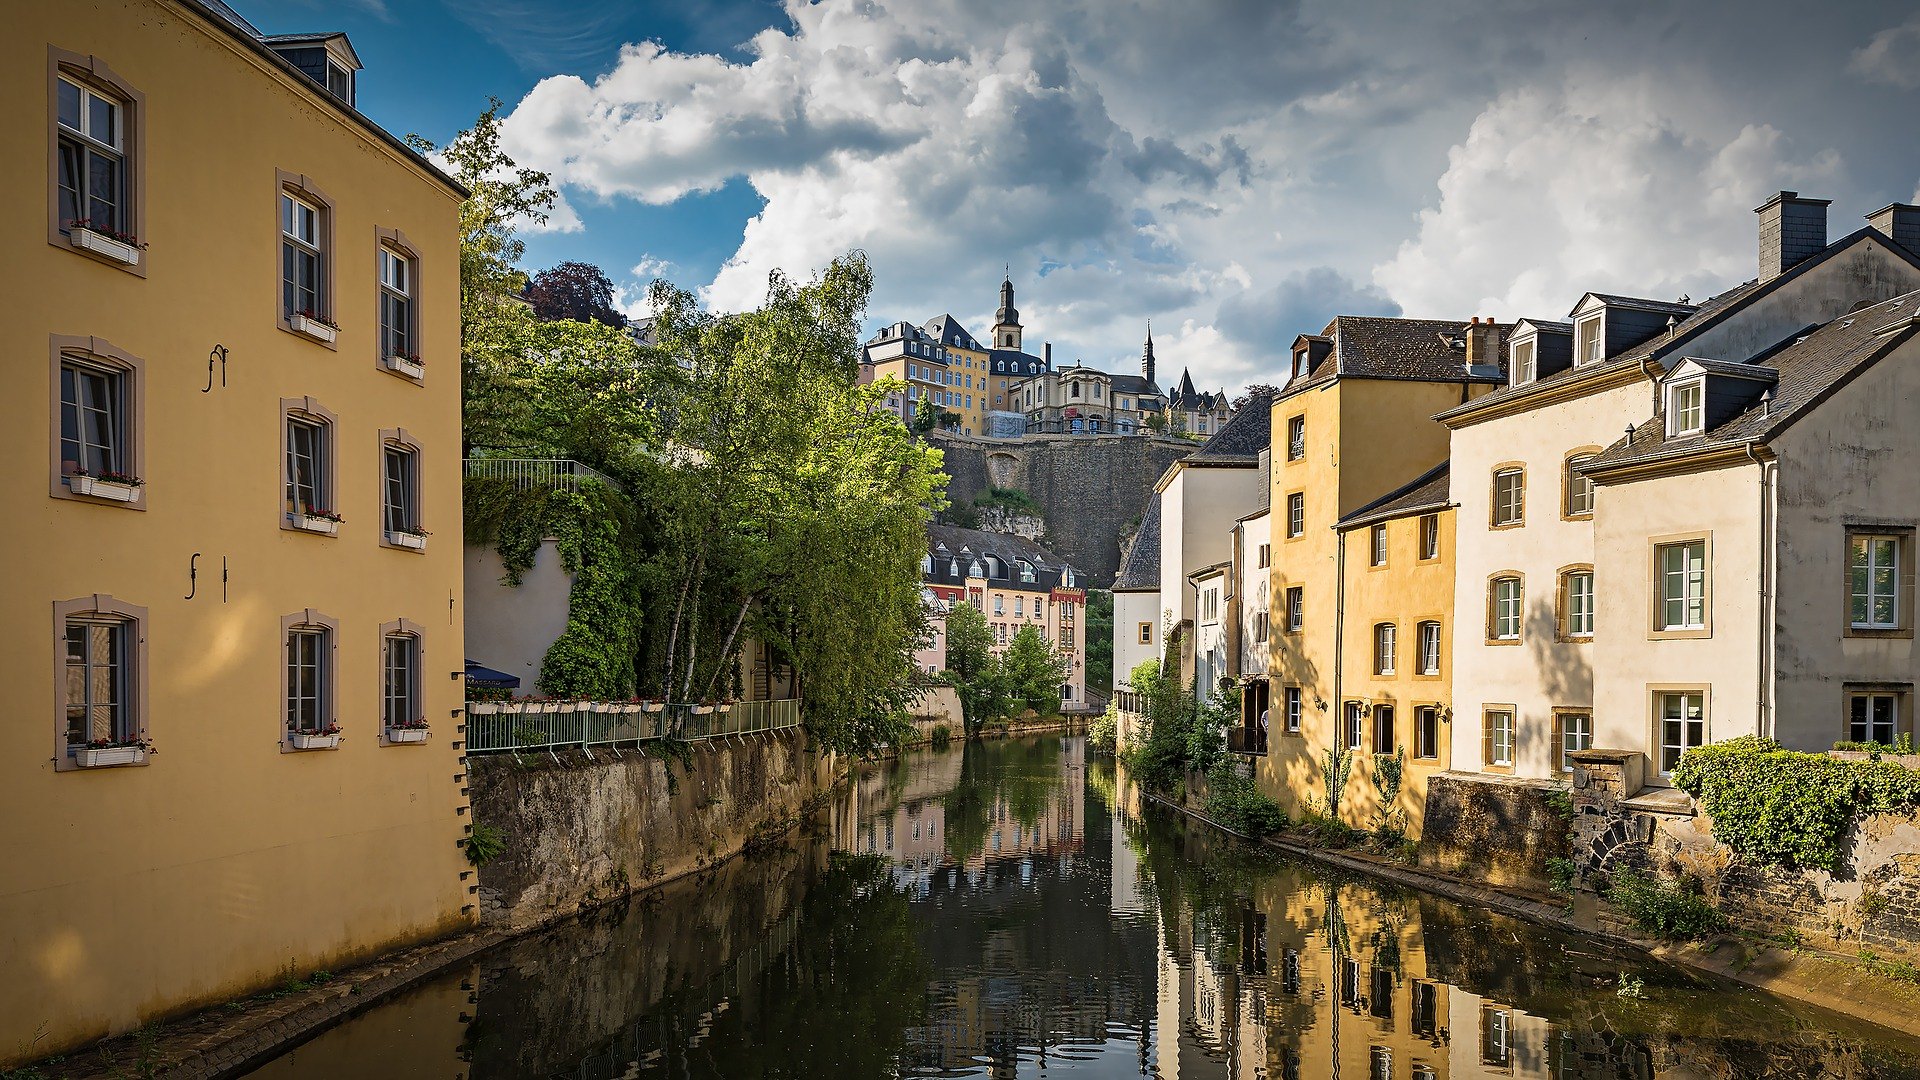 Image of Luxembourg City, Luxembourg